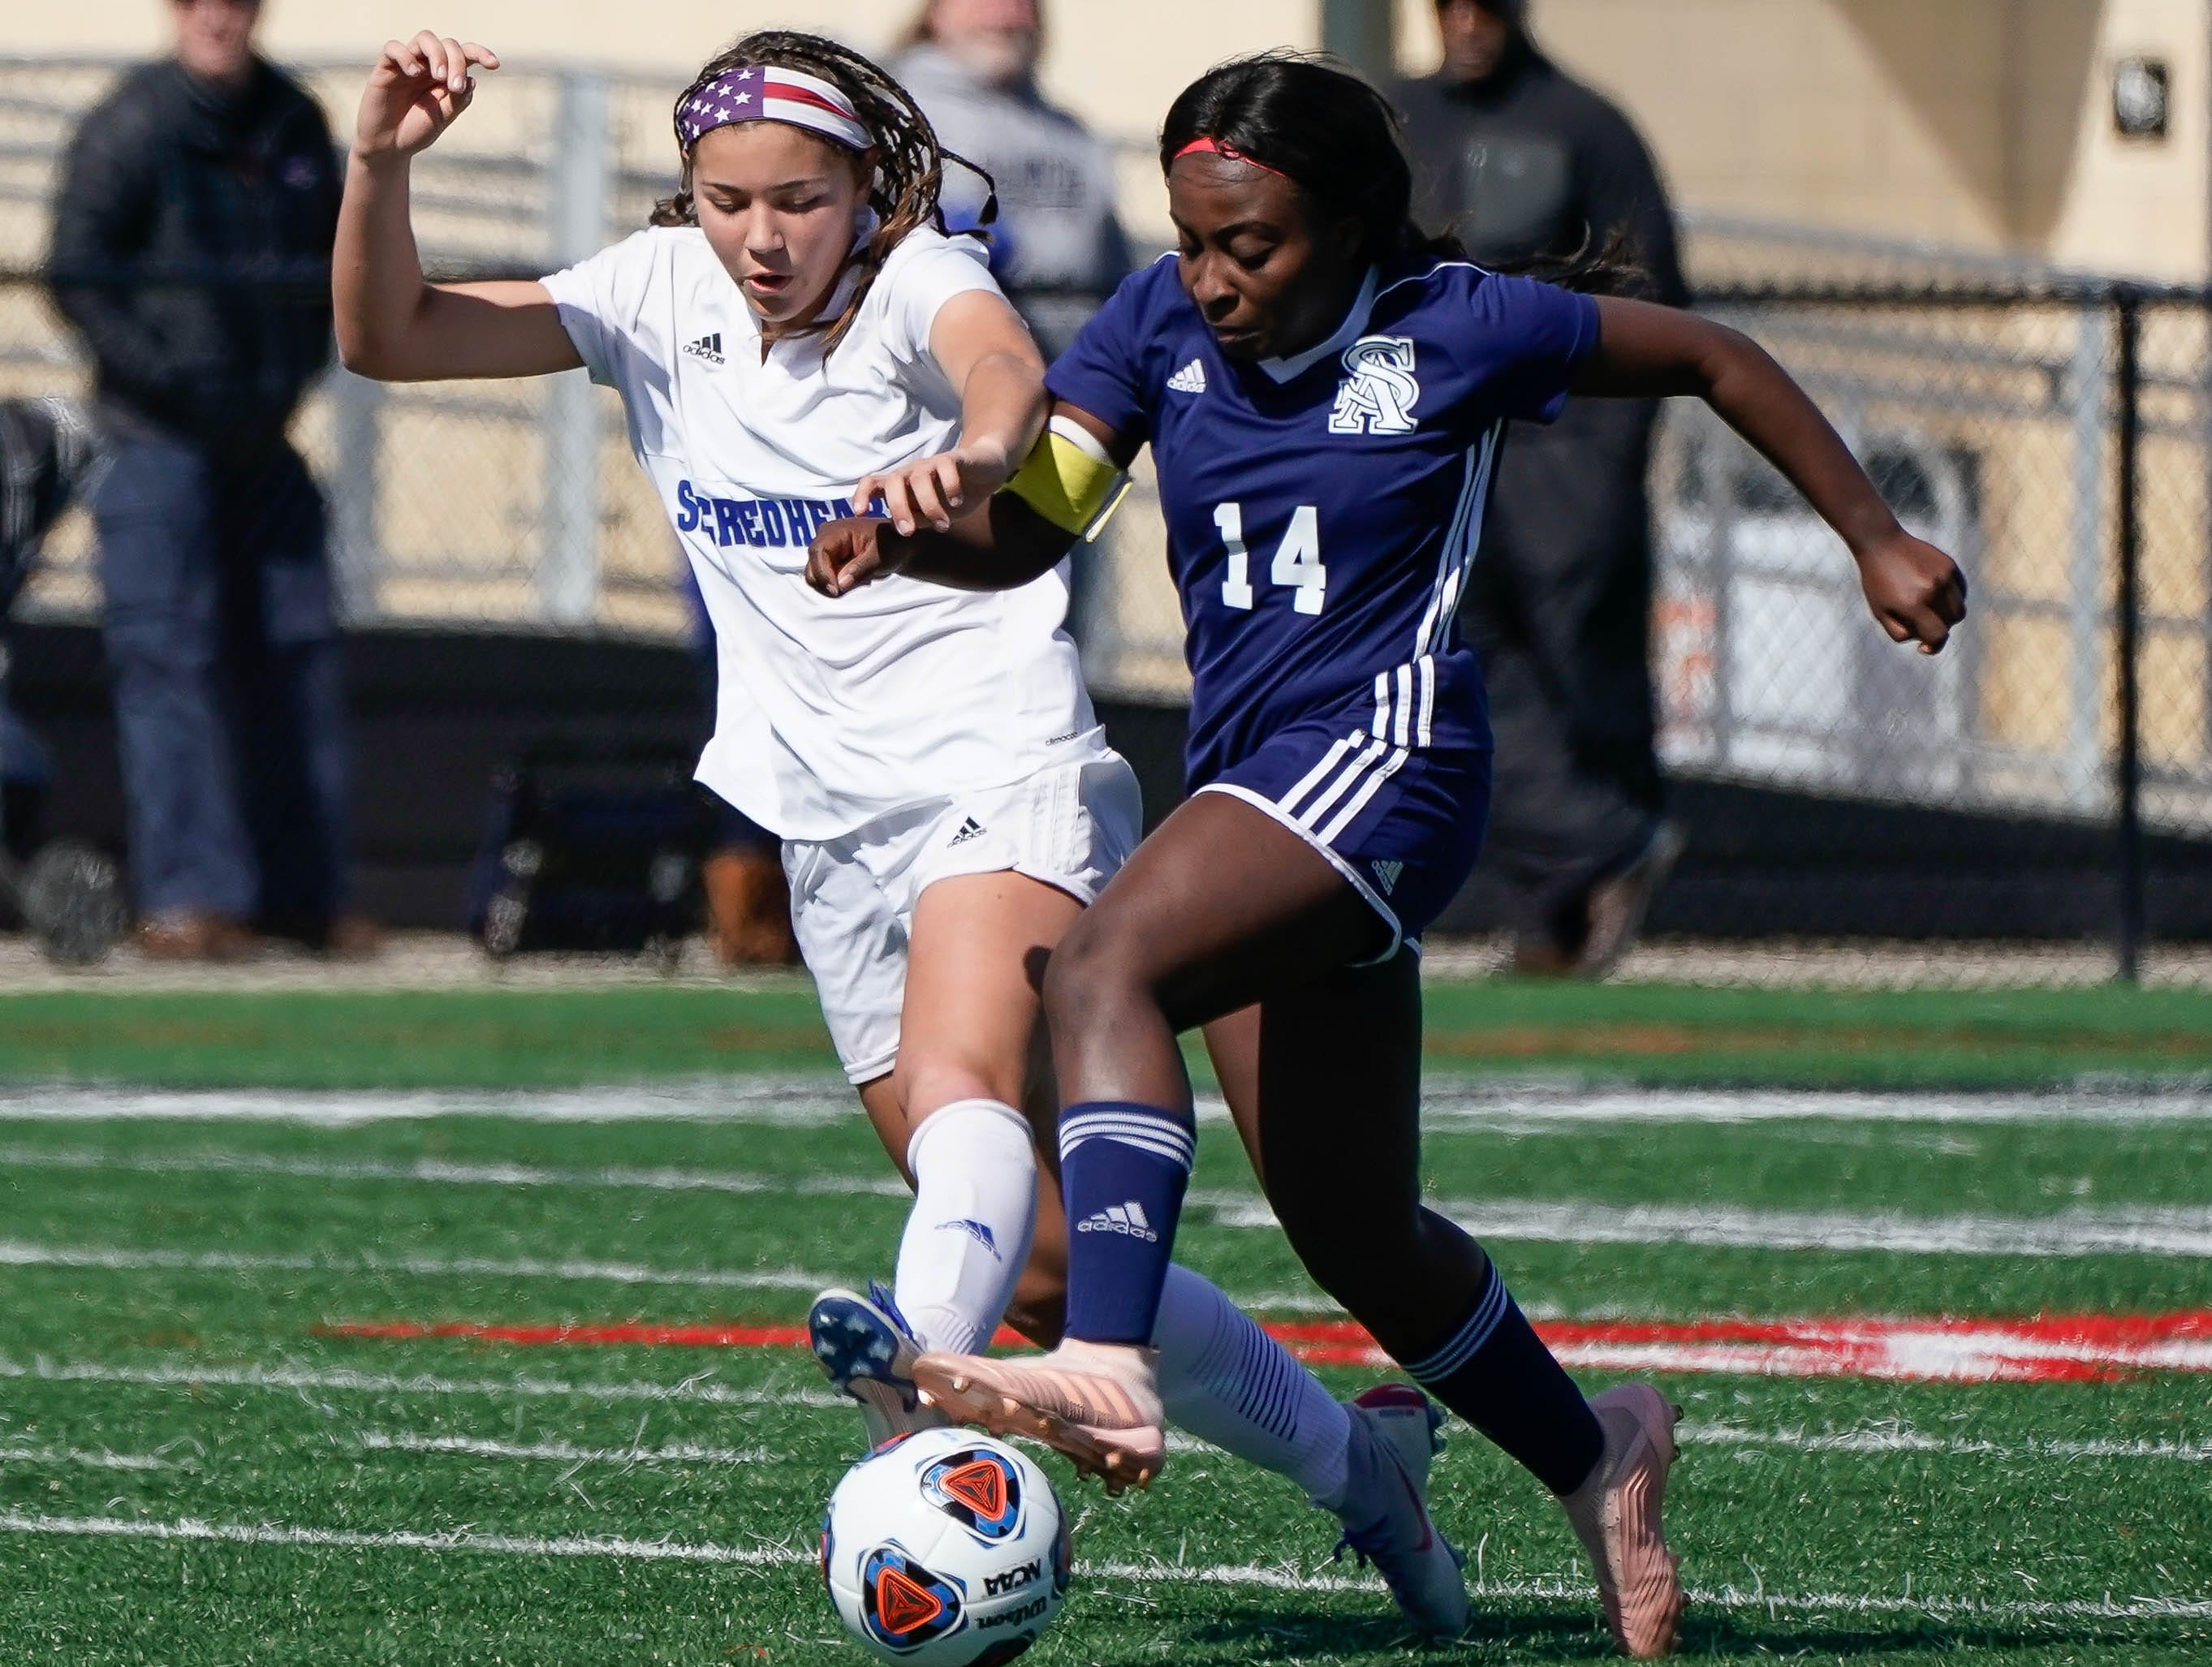 St. Andrew's Toni Oluwatade (14) battles against Sacred Heart's Graciella Falla (10) during the MHSAA 1A,2A,3A  GIrls Soccer Championships held at Brandon High School in Brandon, MS, Saturday February 9, 2019.(Bob Smith-For The Clarion Ledger)